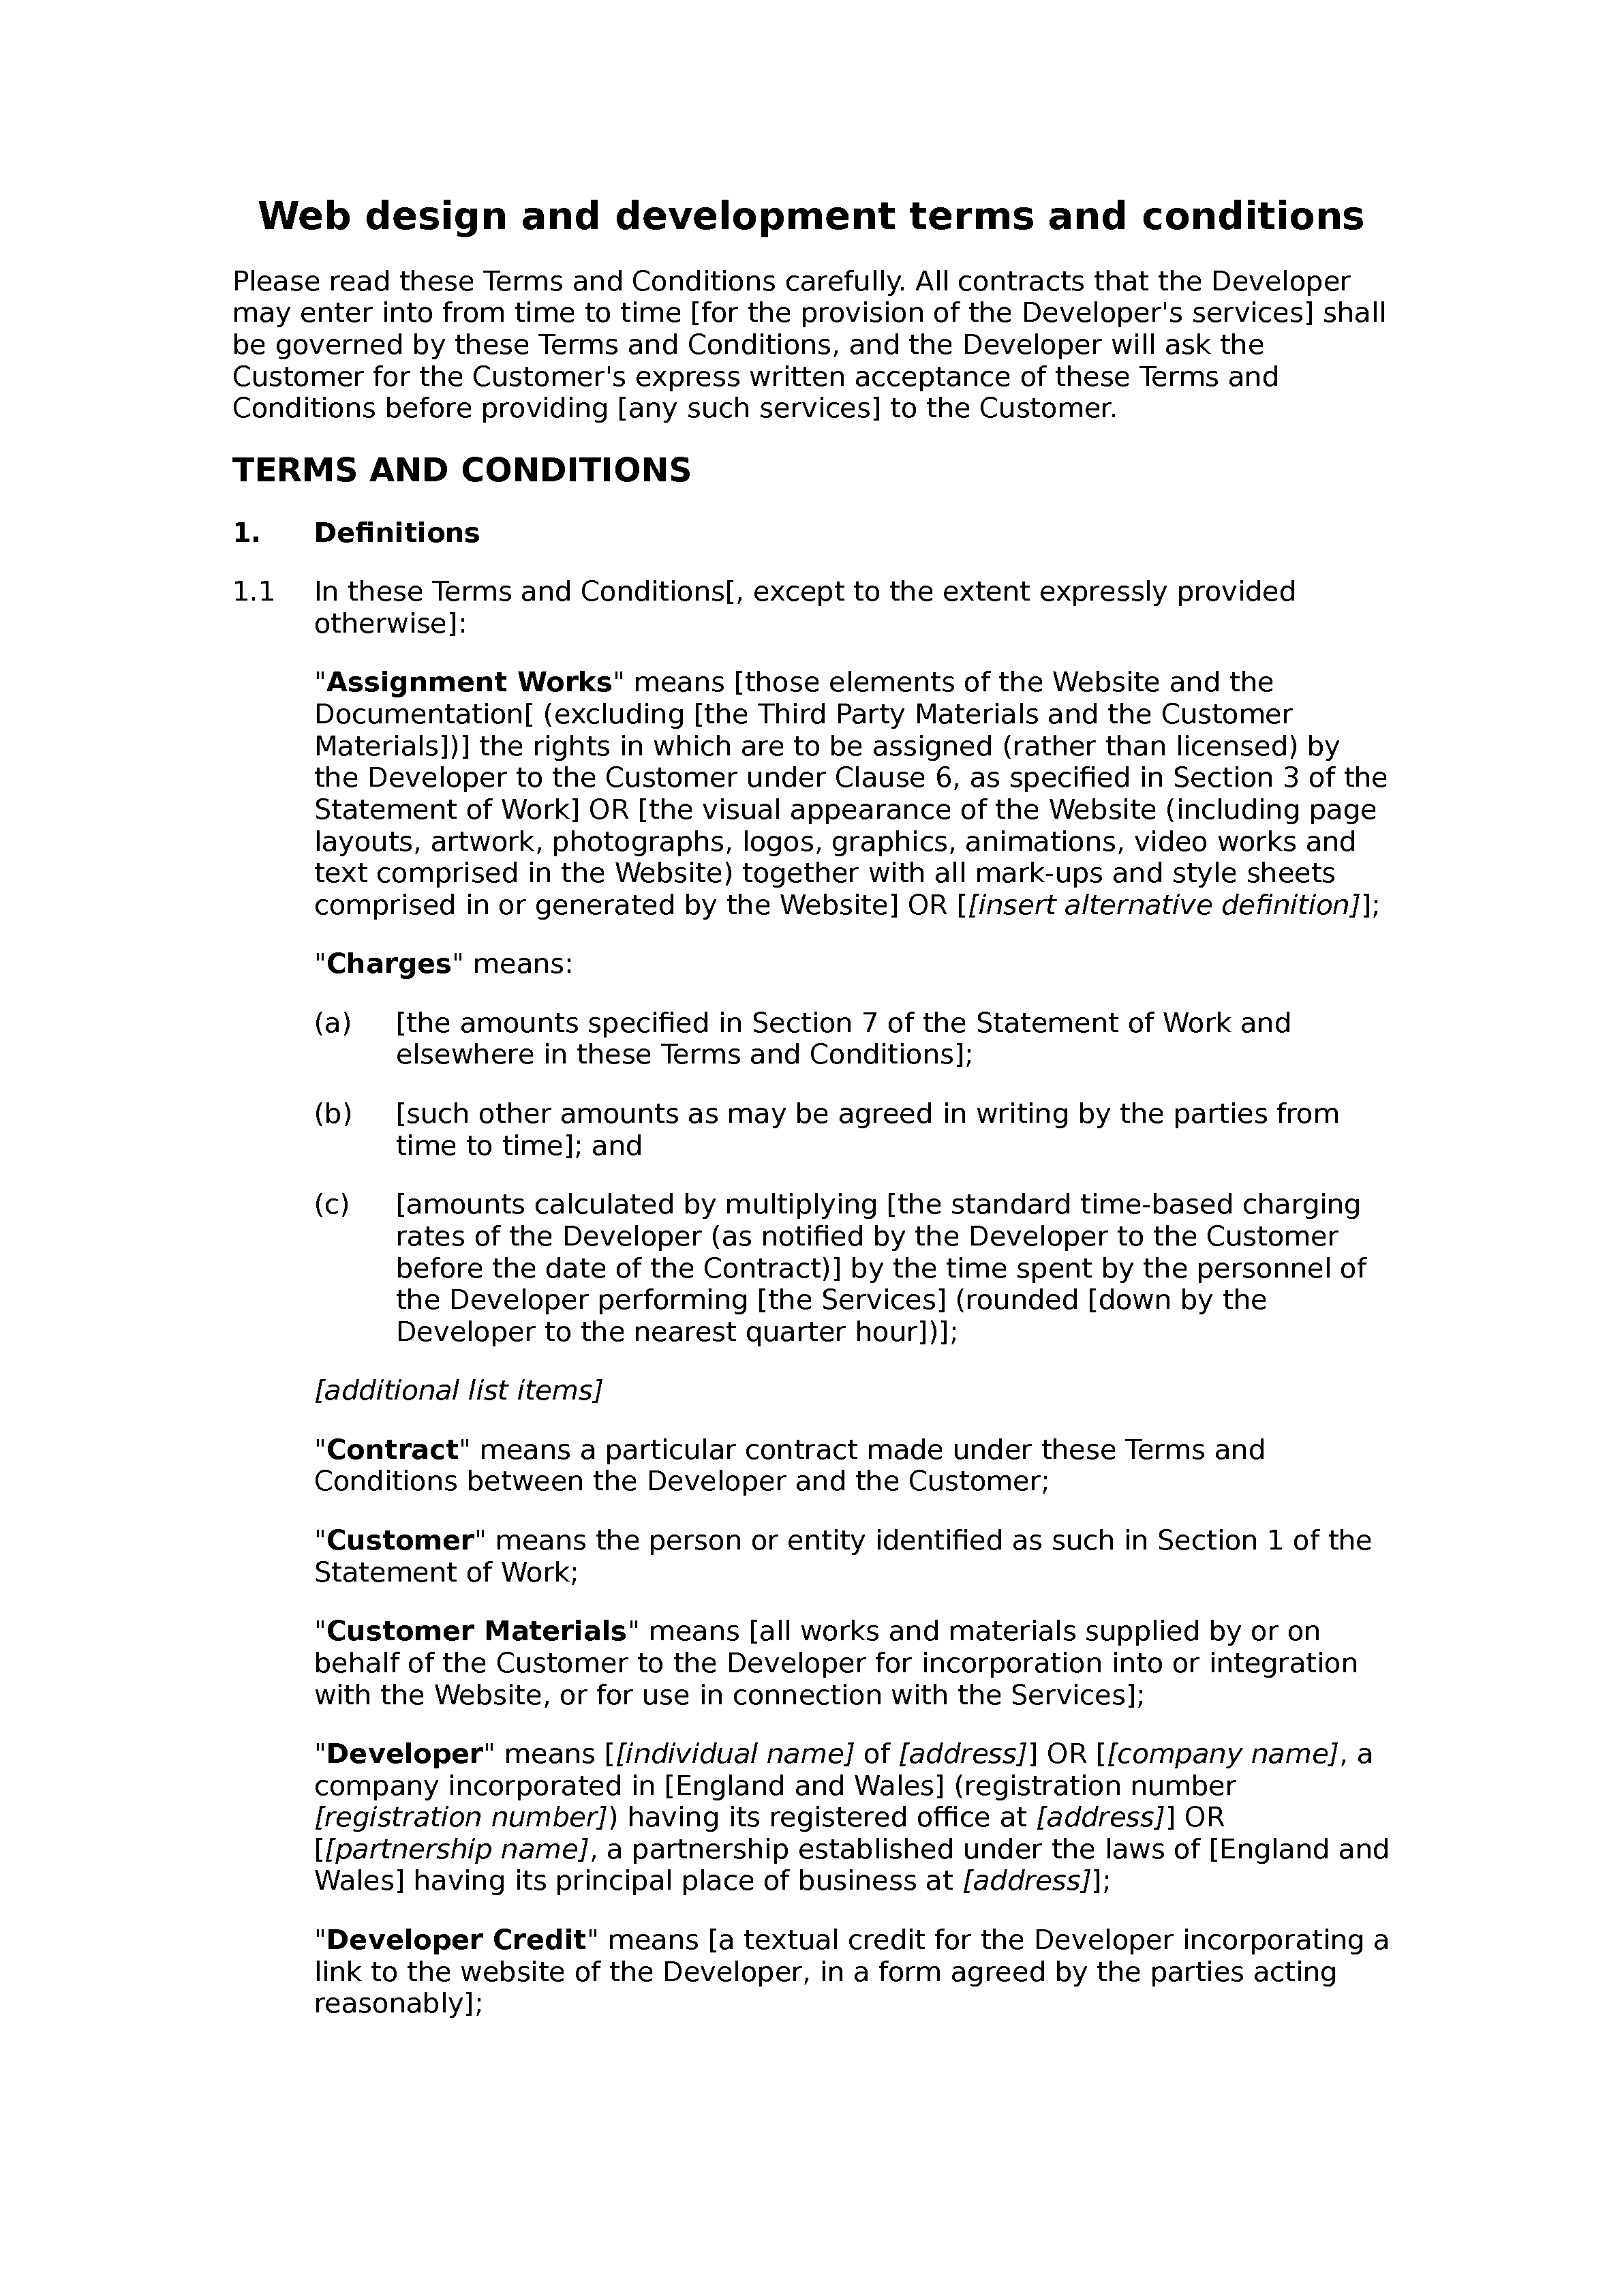 Web design and development terms and conditions (basic) document preview